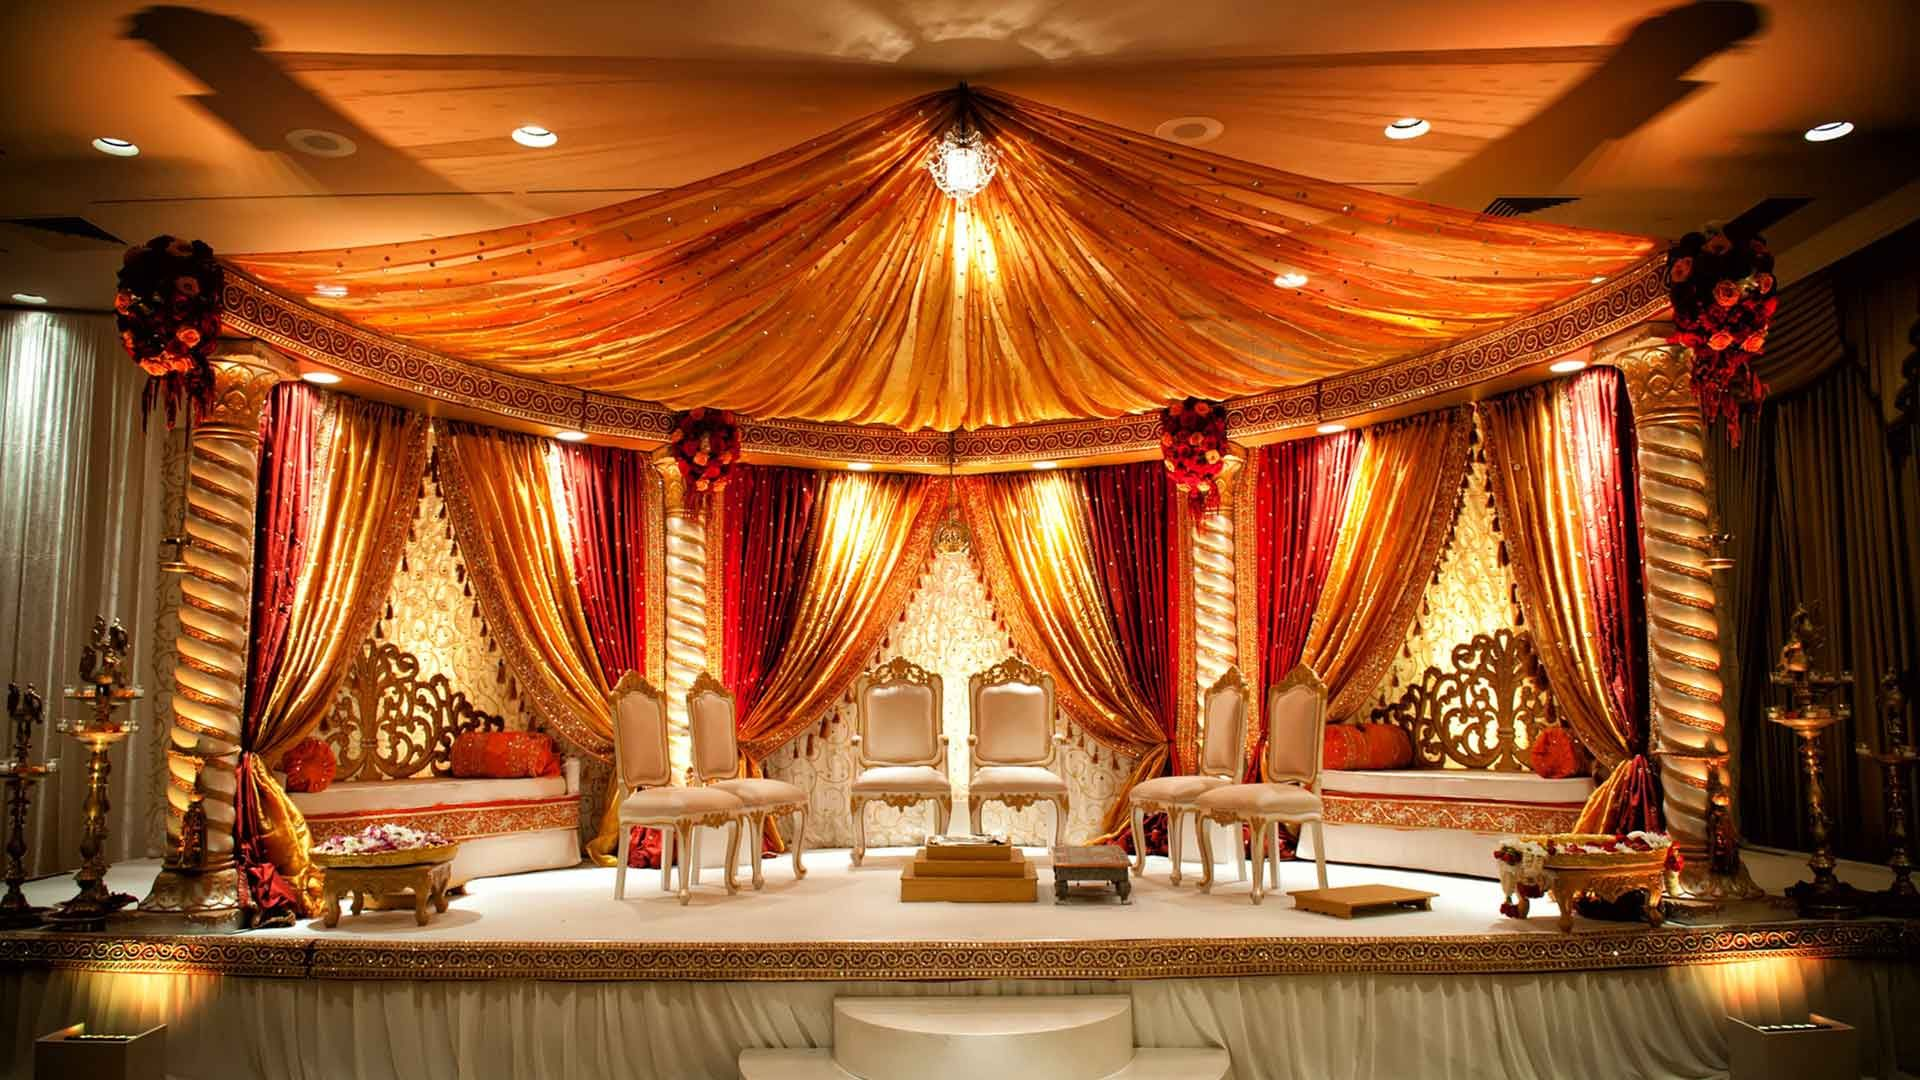 indian wedding decorations at home - Indian Wedding Decorations